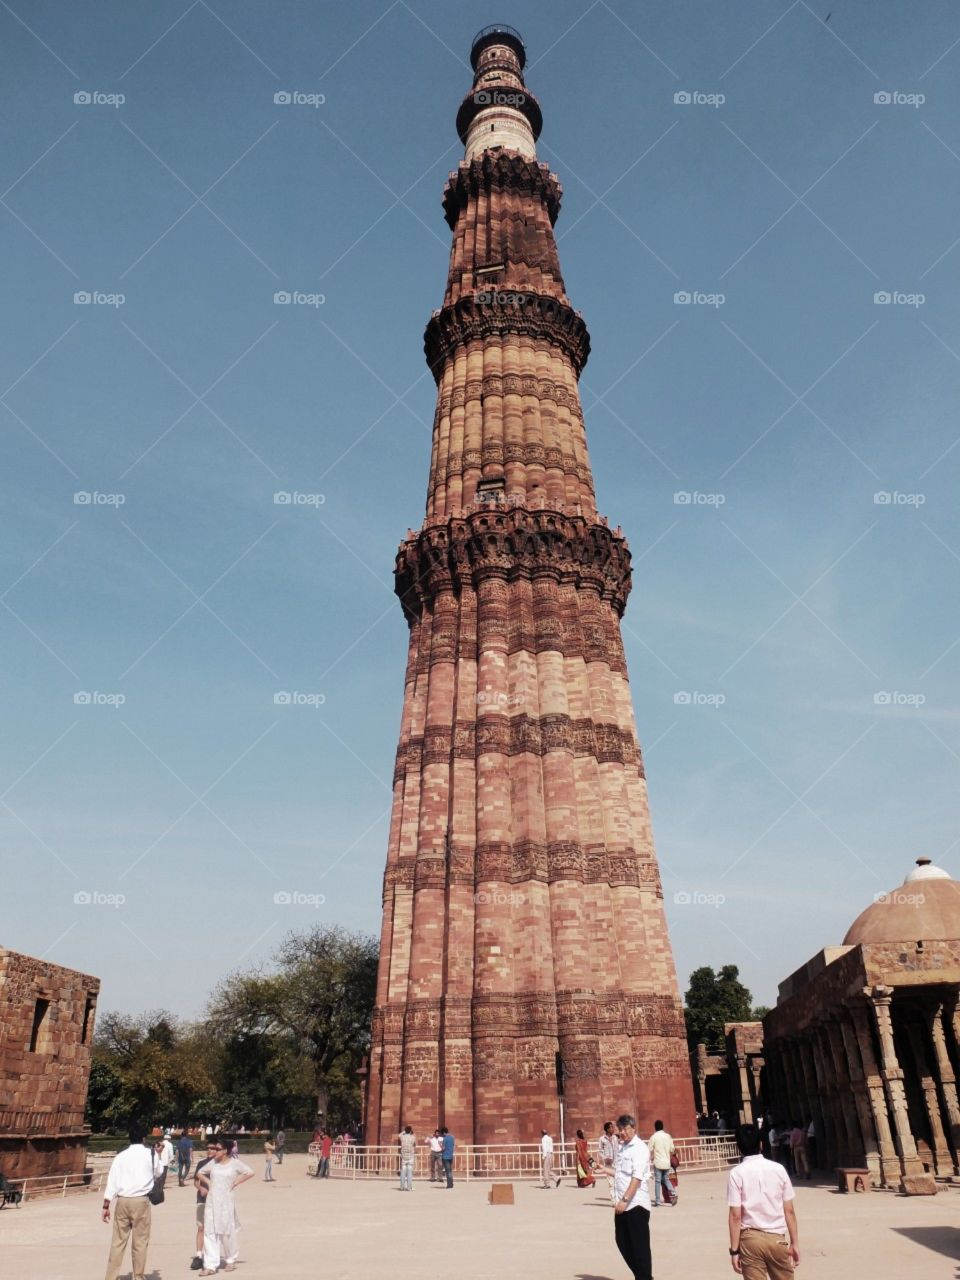 The wonder on earth - Qutub Minar is a World World Heritage Site and has survived the ravages of time impressively.The soaring conical tower is an exquisite example of Indo-Islamic Afghan architecture.